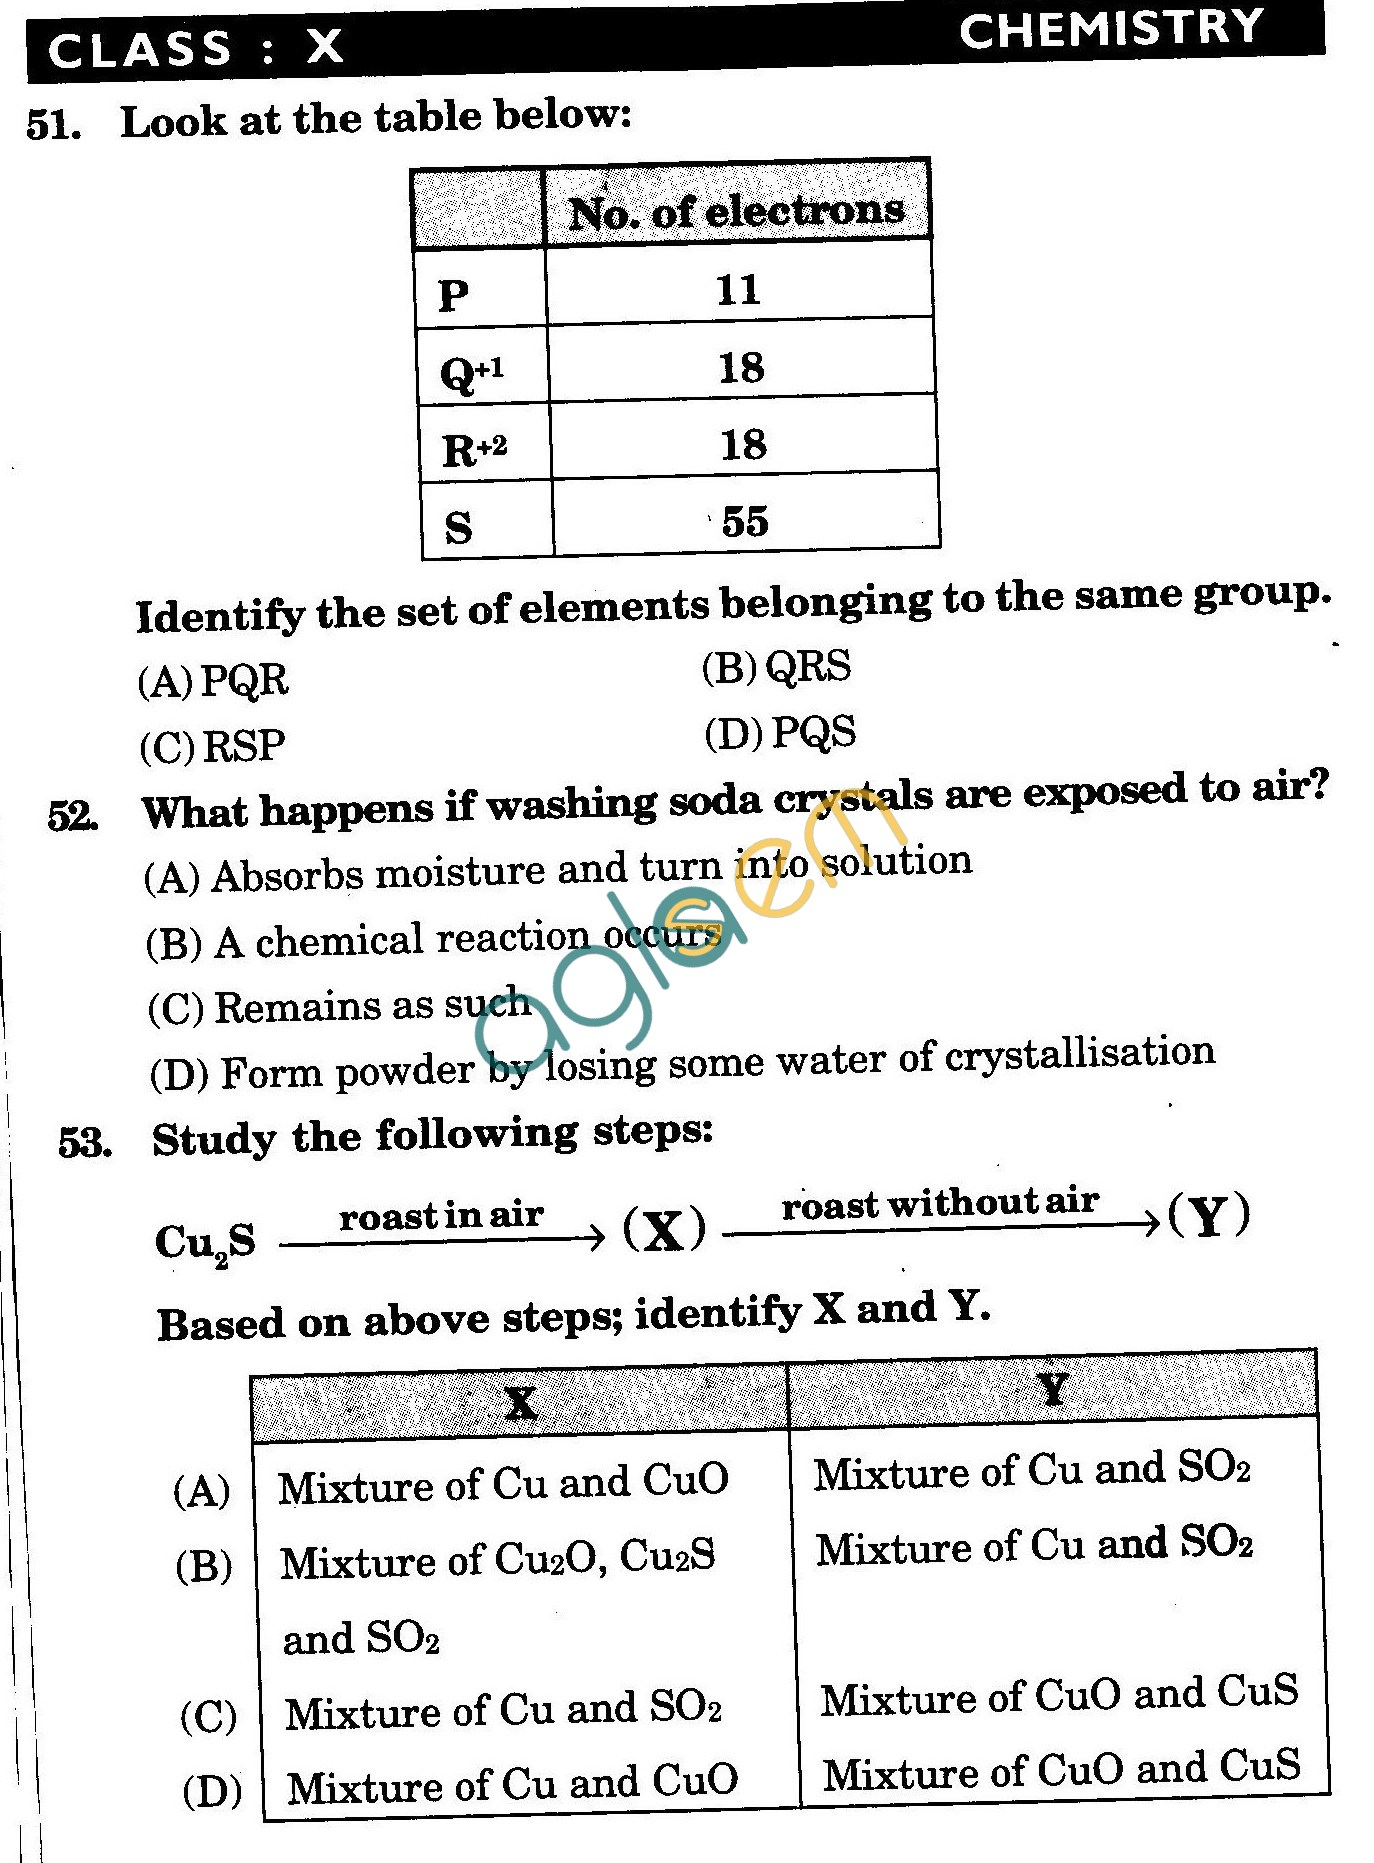 NSTSE 2010: Class X Question Paper with Answers - Chemistry